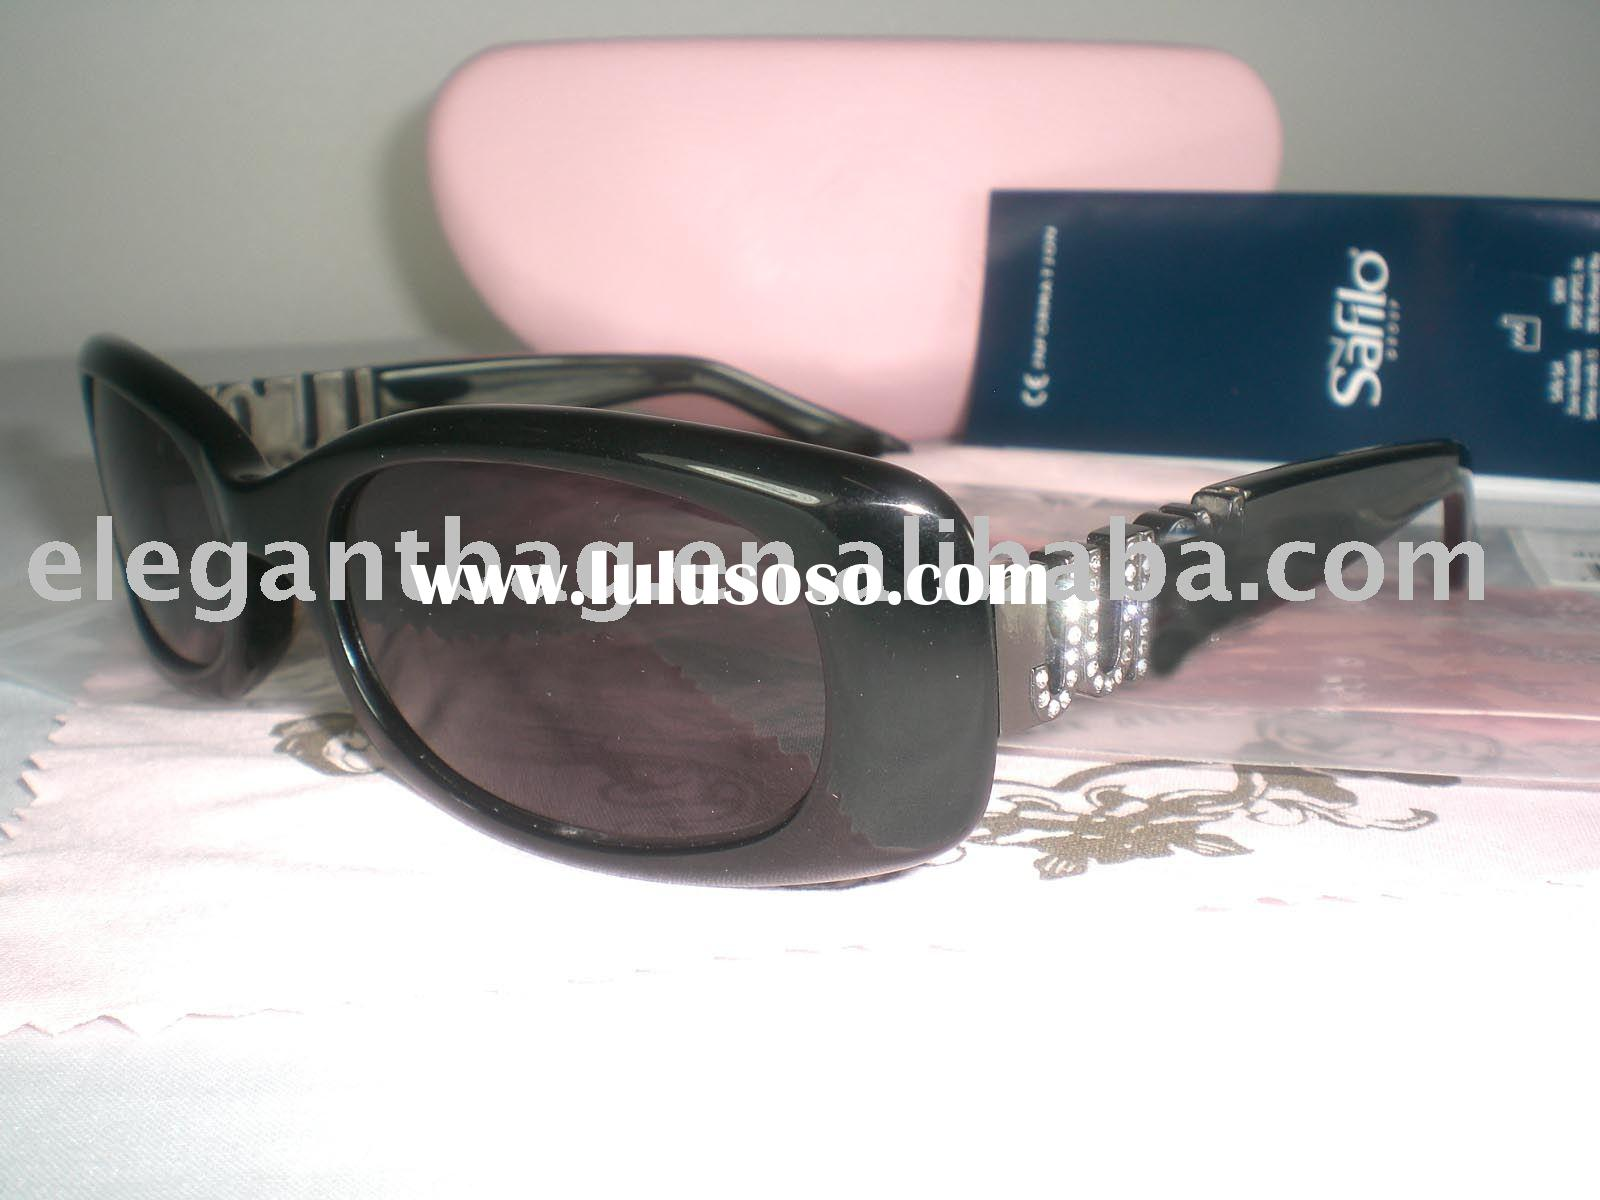 selling fashion glasses,summer glasses,brand glasses,latest sunglasses,paypal and free shipping!!!